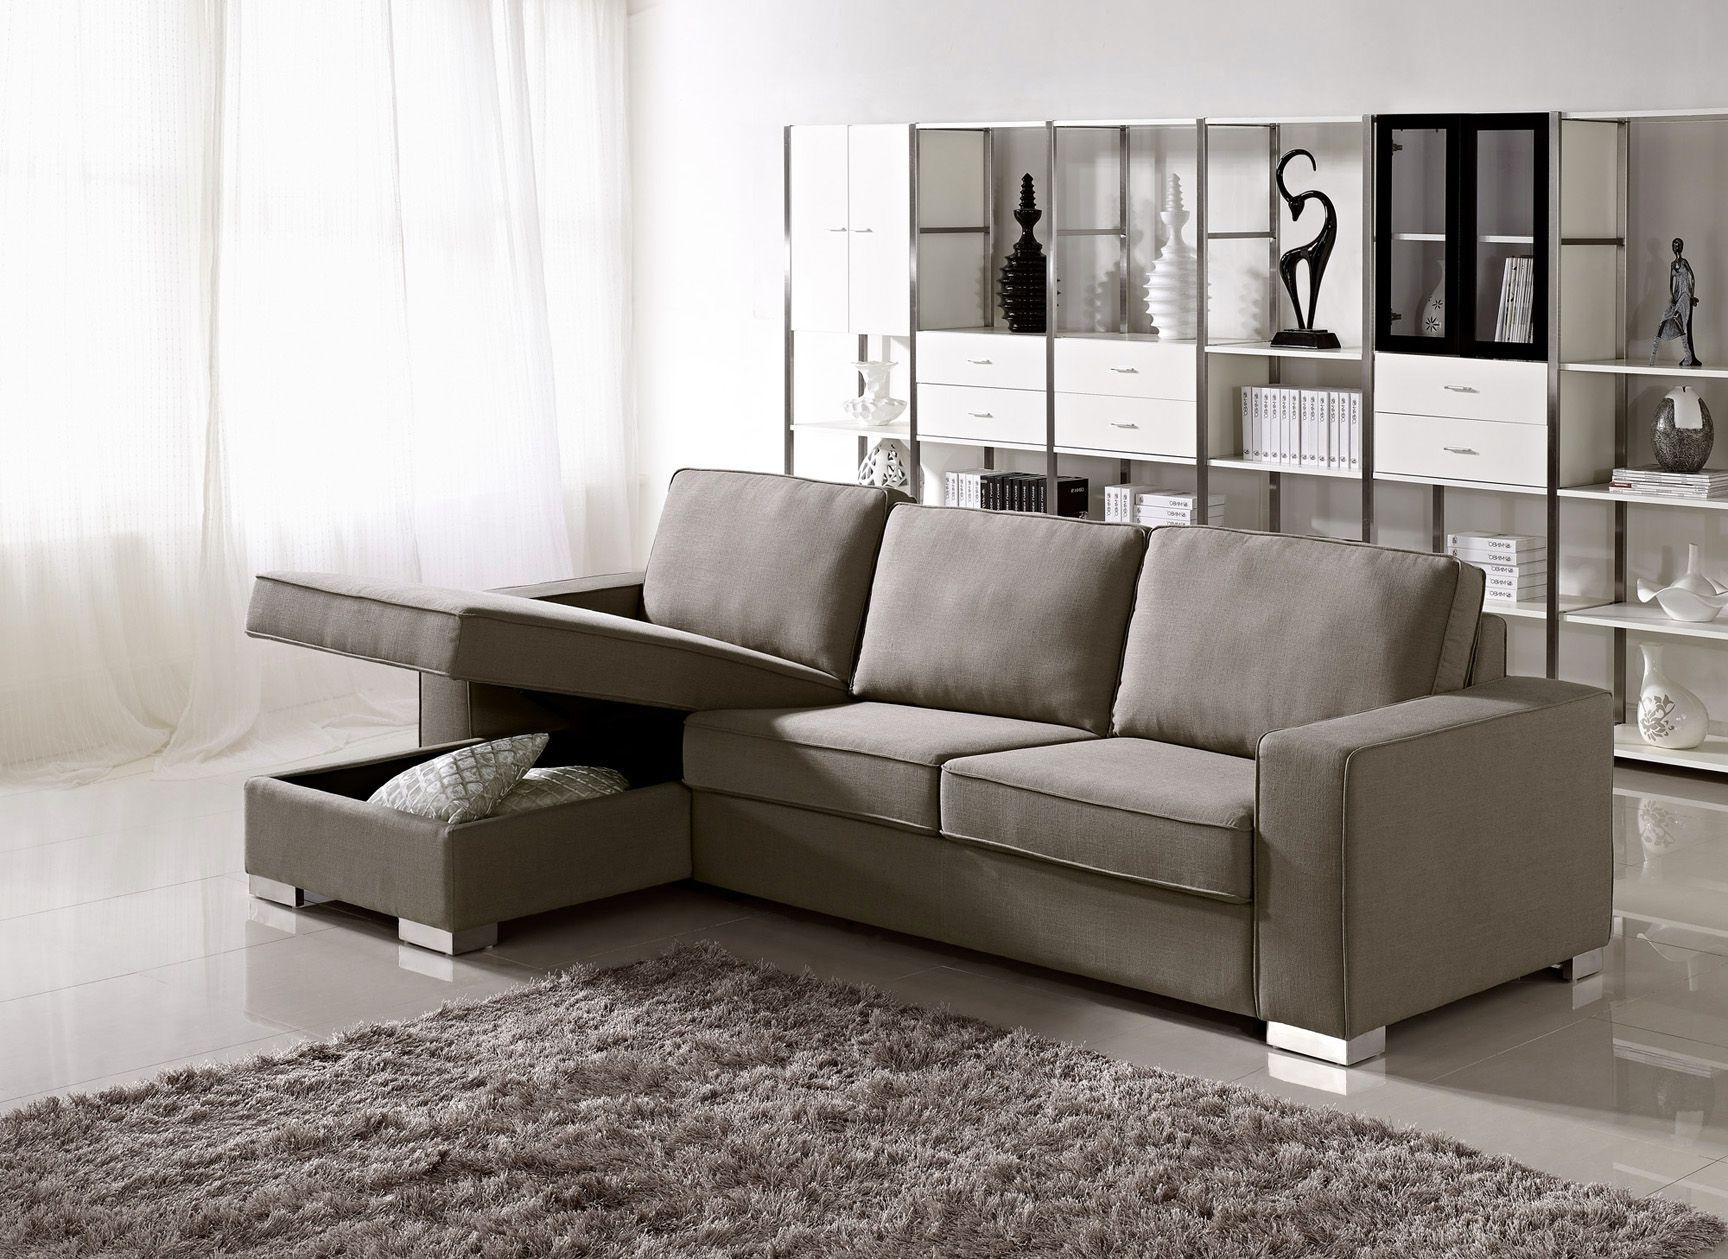 Sleeper Sofas With Chaise Lounge Regarding Preferred Leather Armchair And Ottoman Chaise Sofa With Storage Ottoman (View 11 of 15)